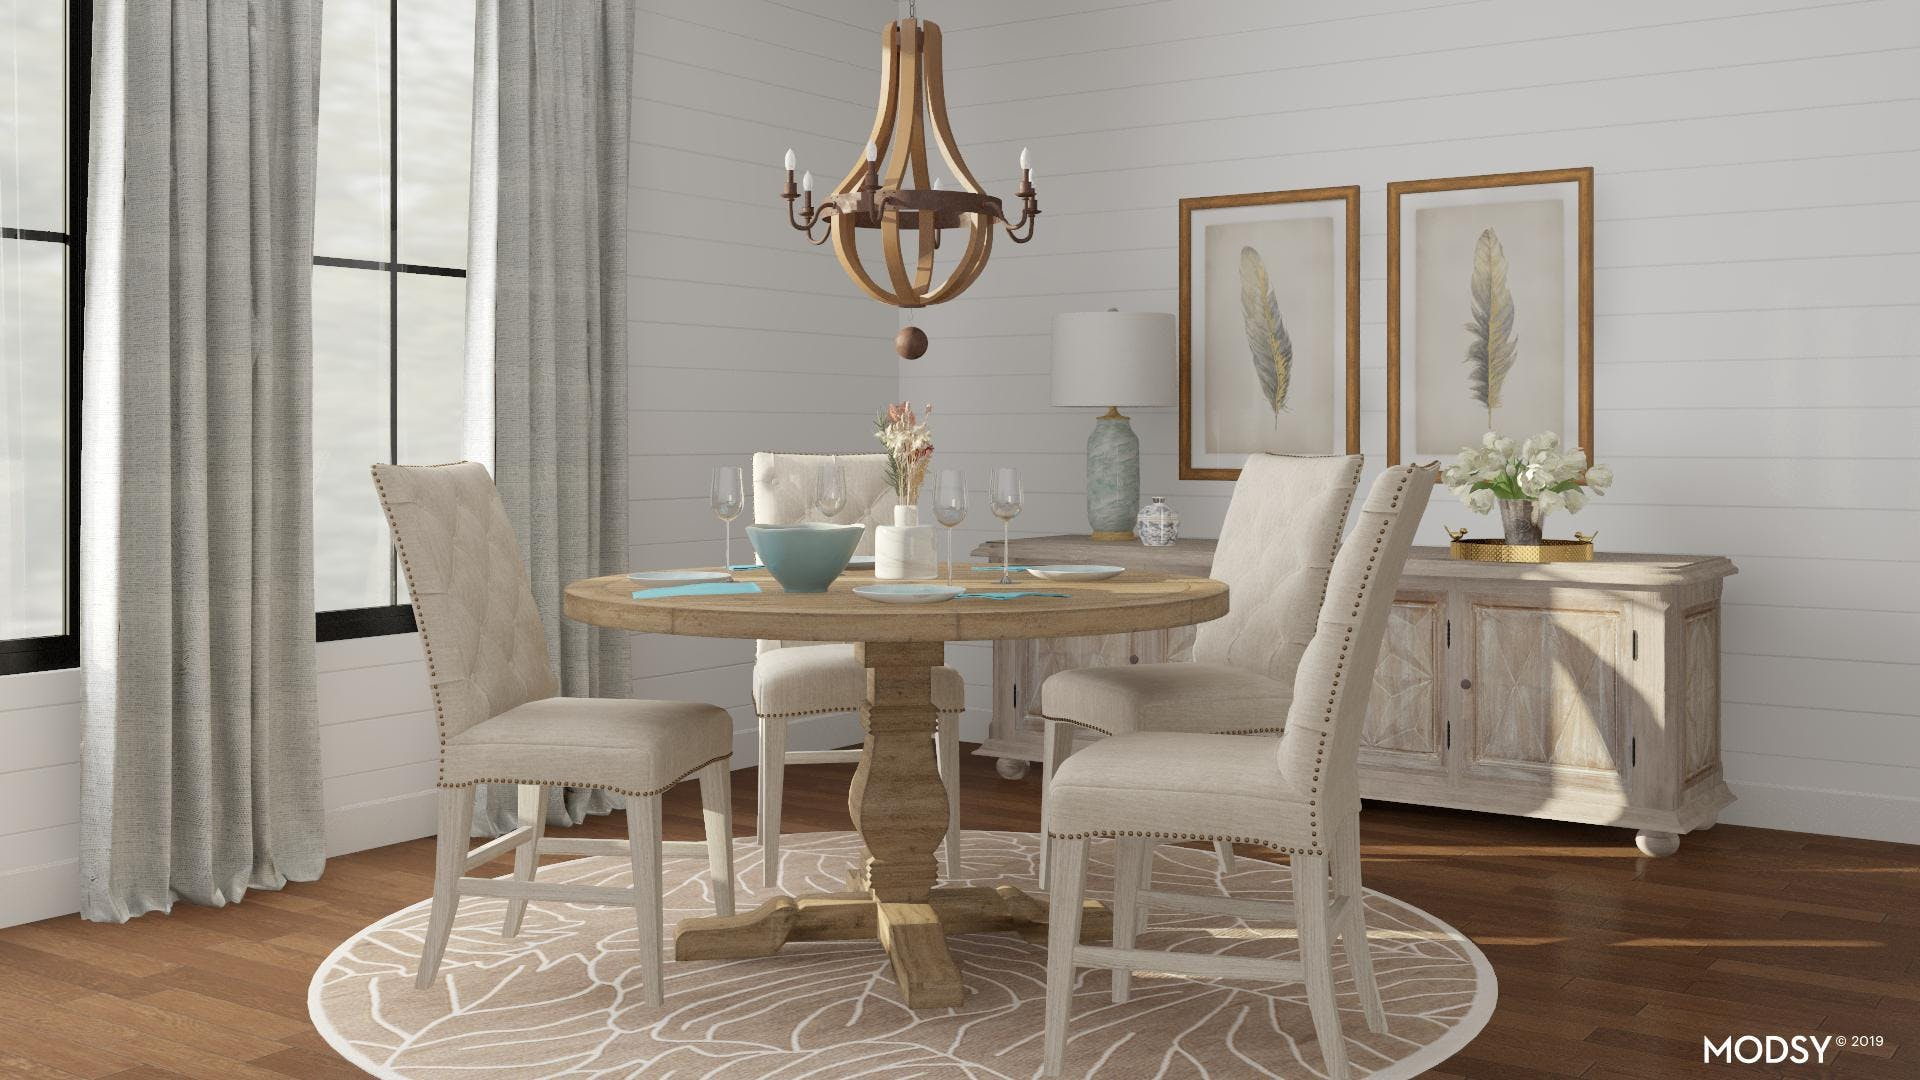 A Dining Room with Rustic Elegance